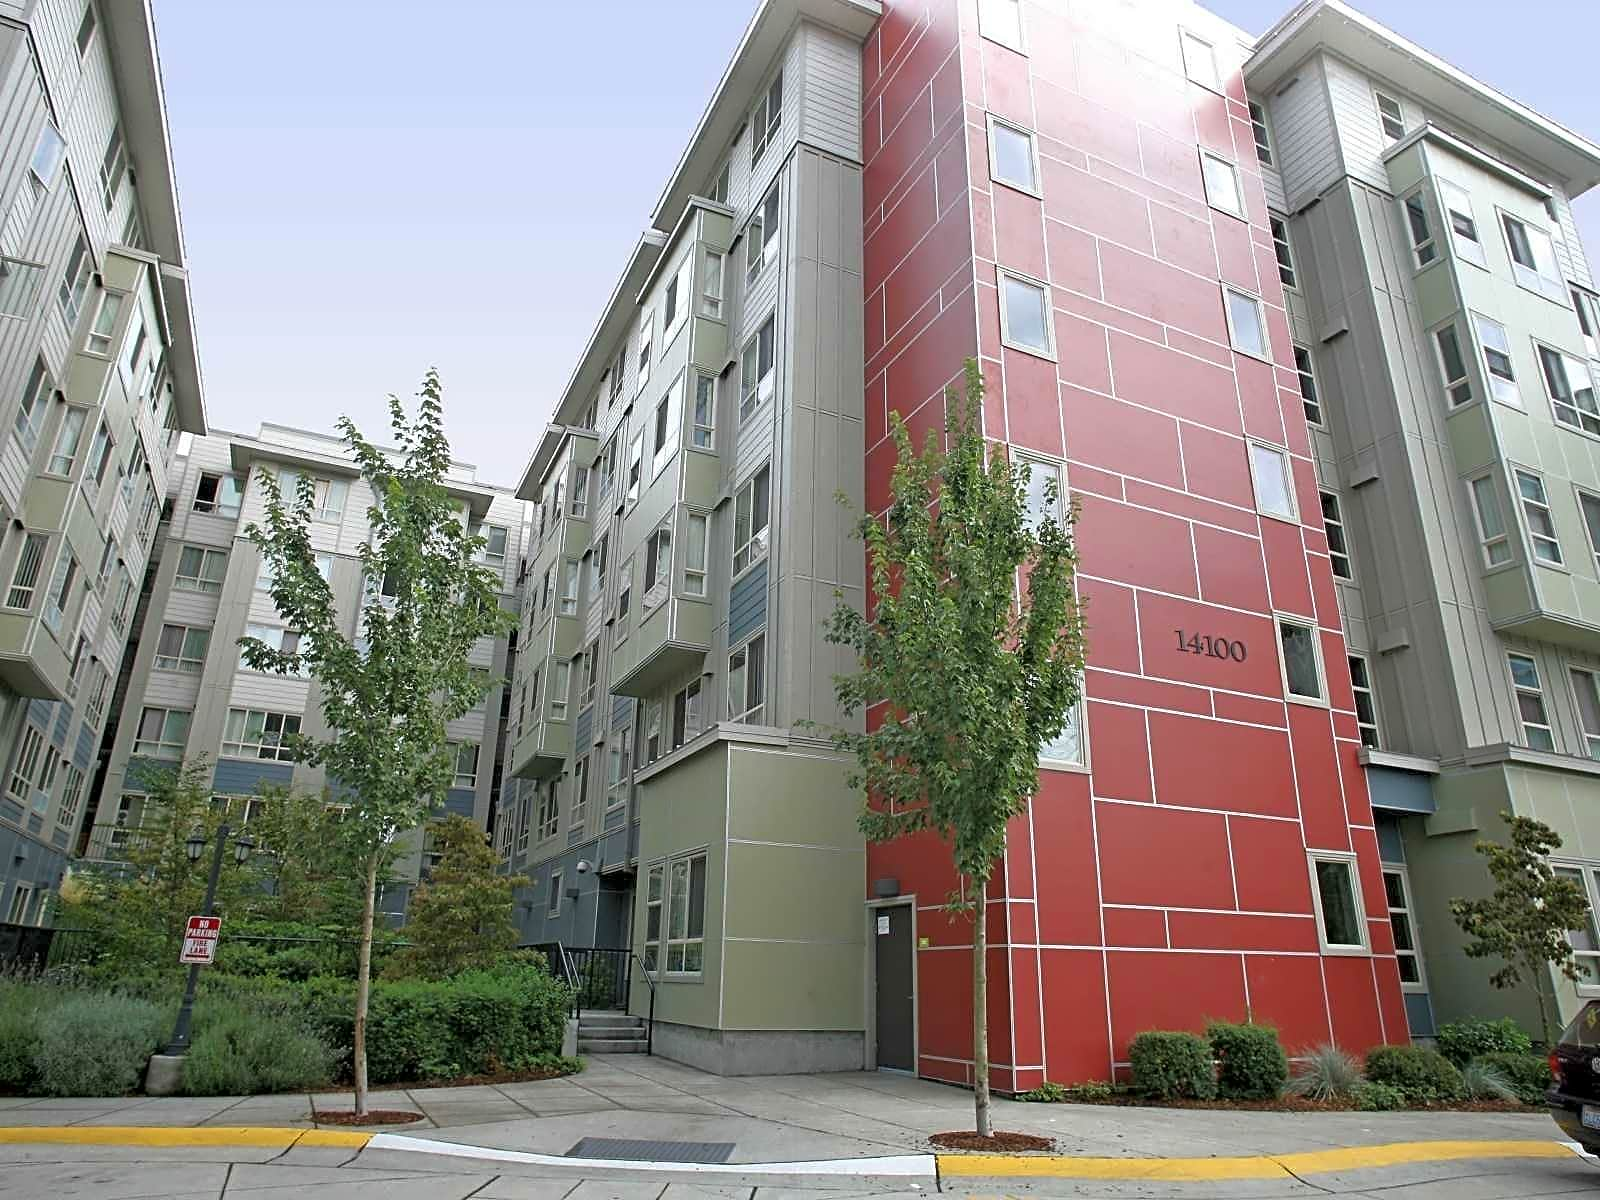 Tressa apartments seattle wa 98133 for Art institute of seattle parking garage